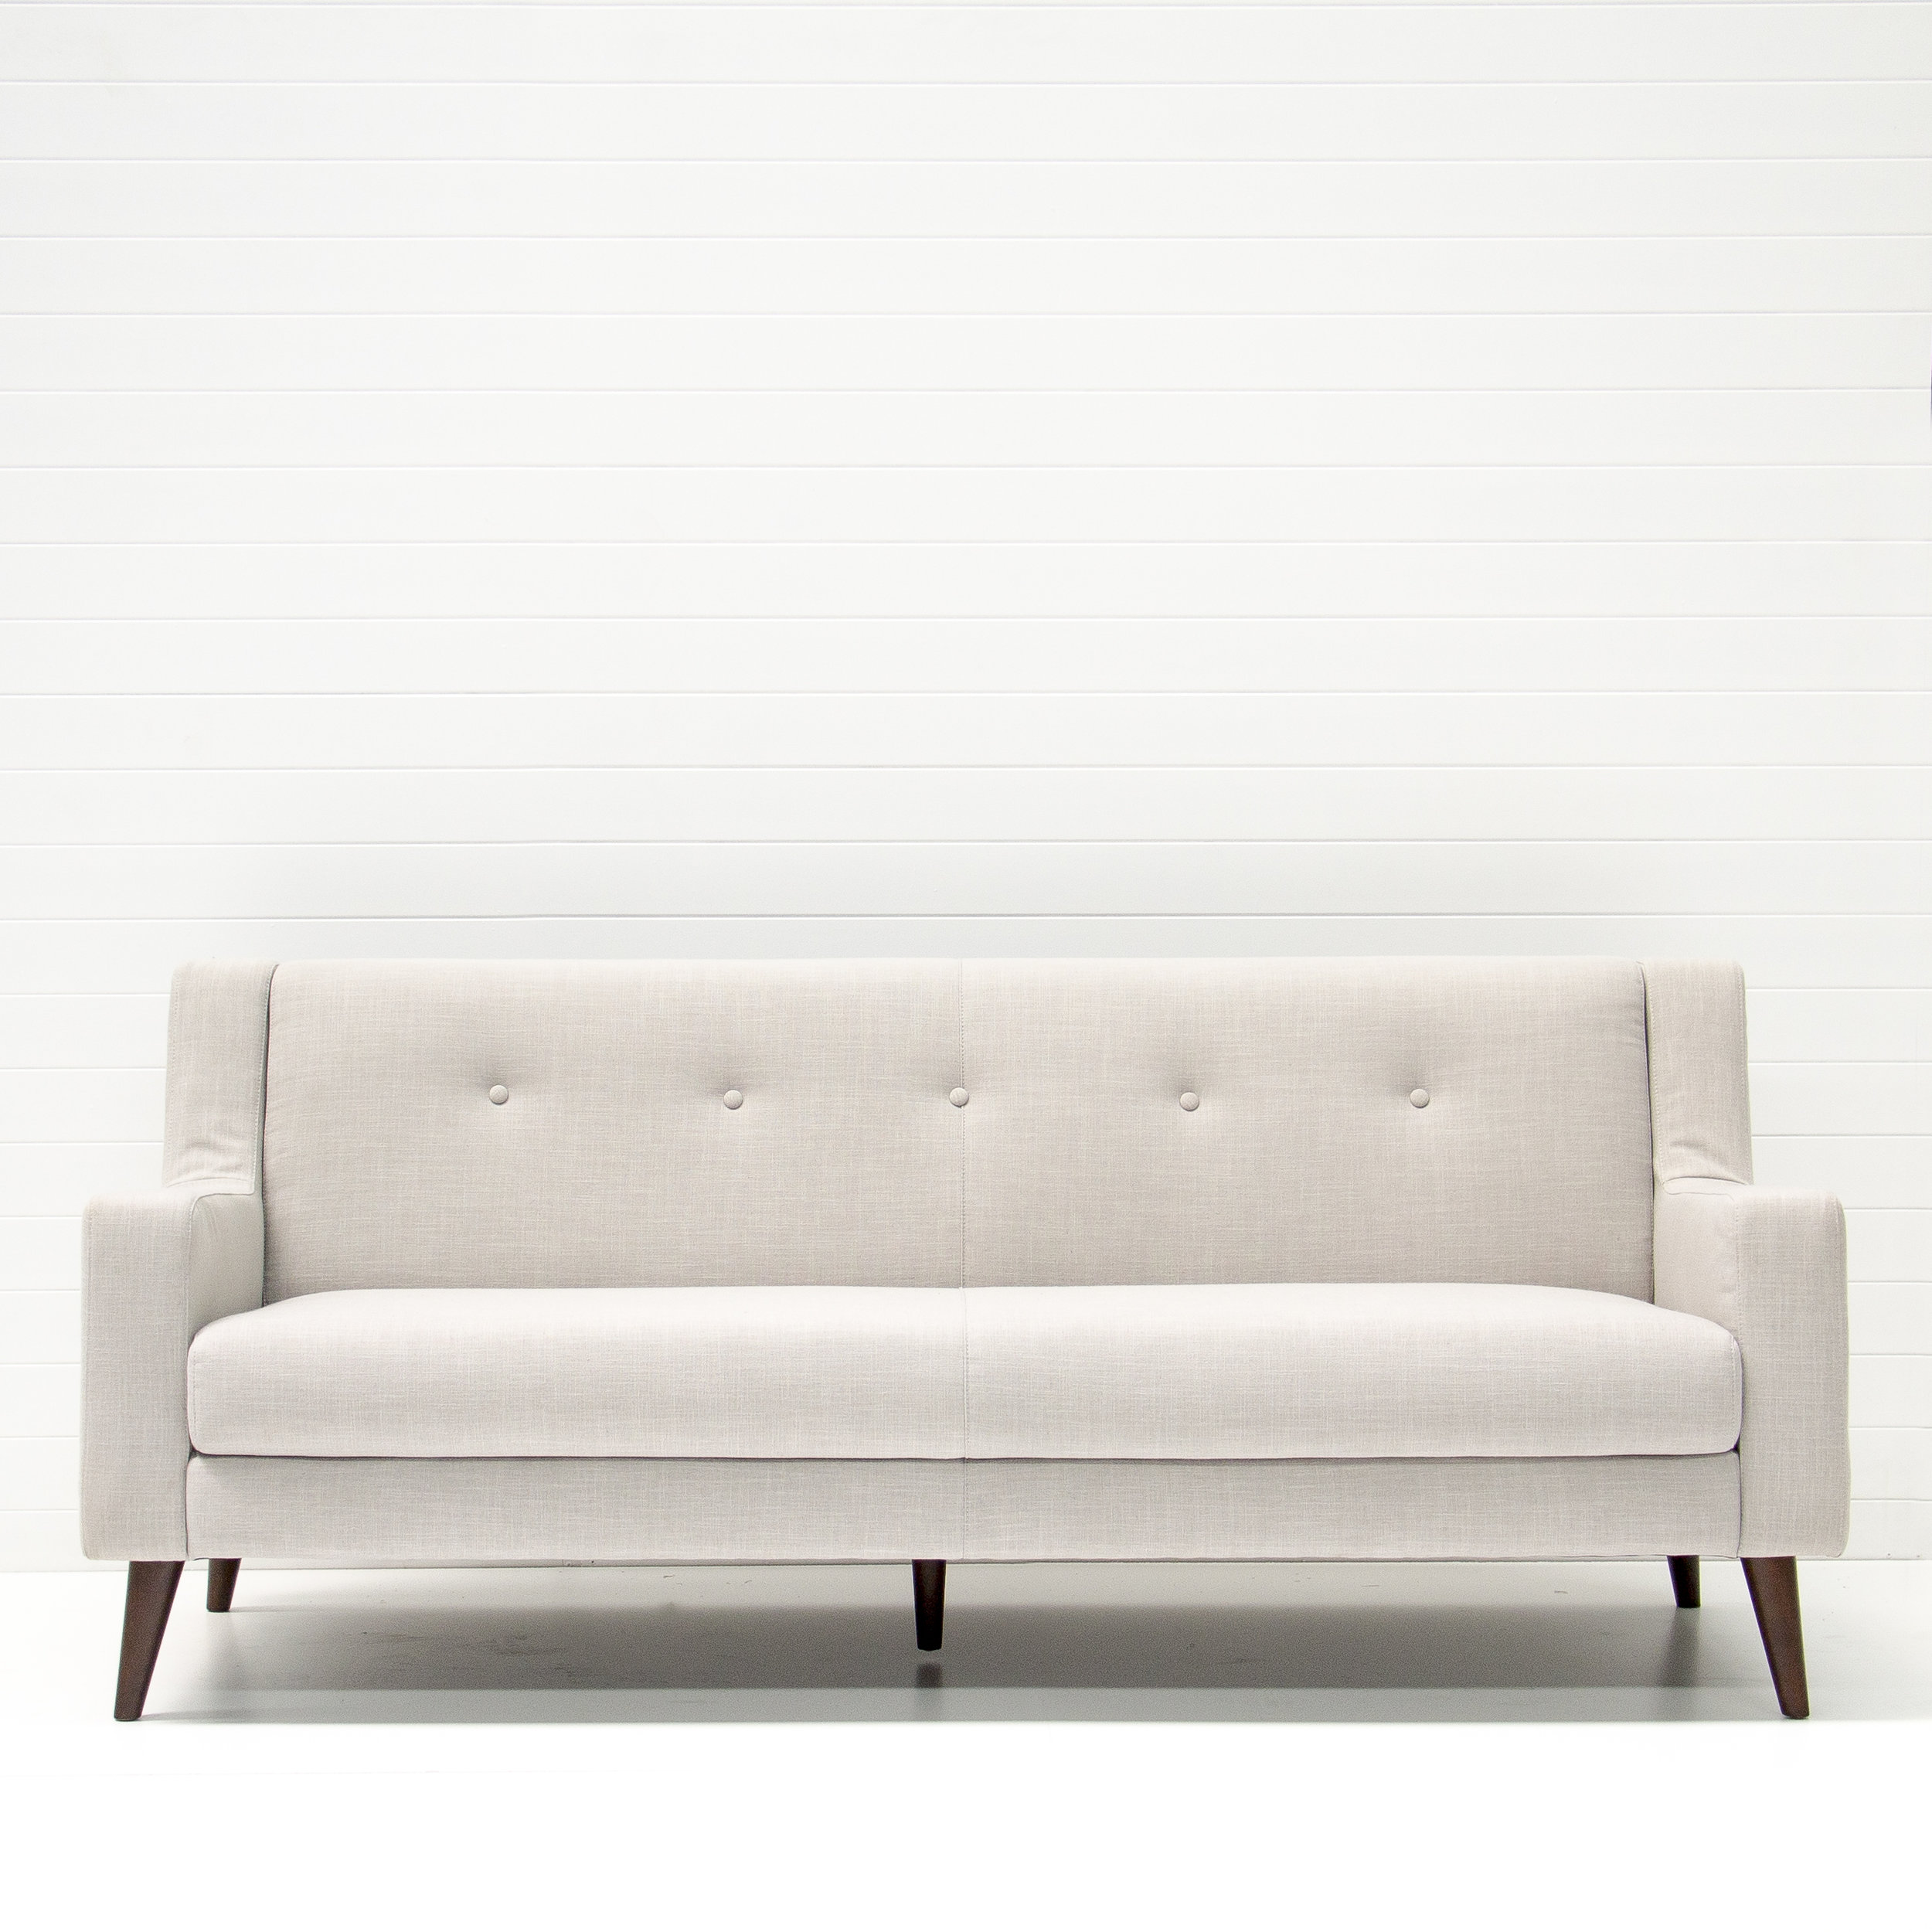 3 seater Parisian sofa